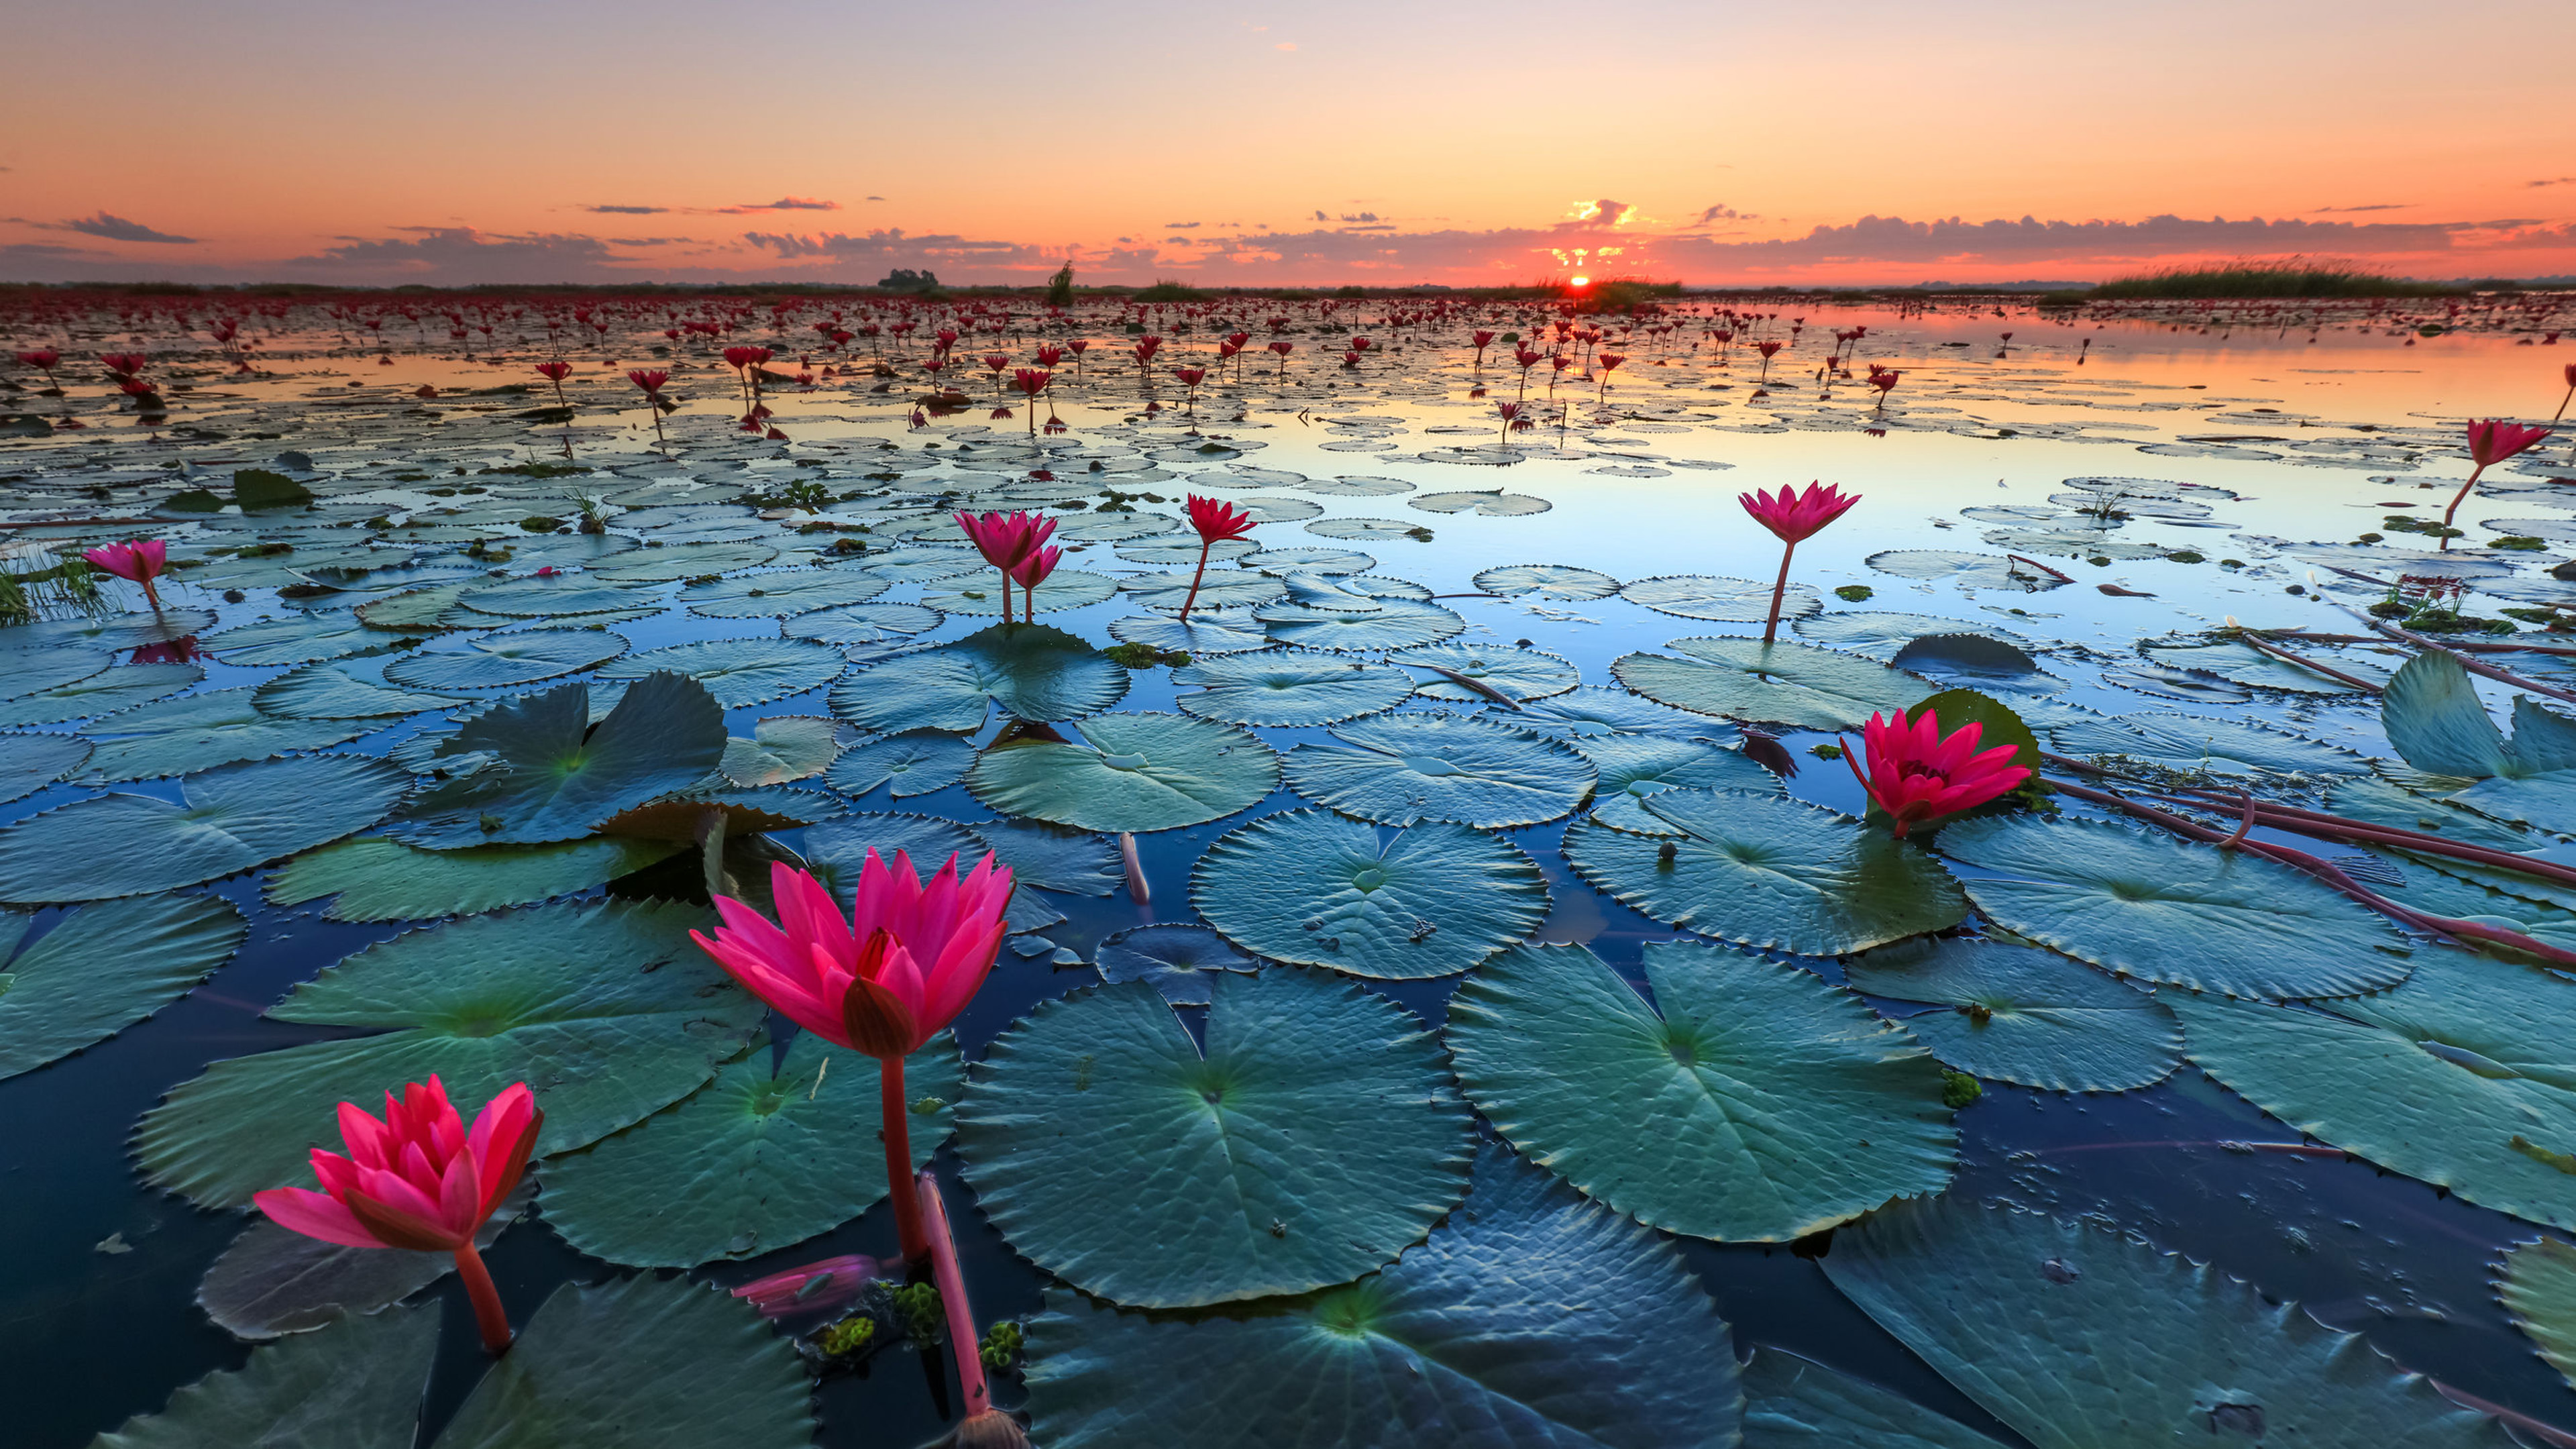 Lotus Wallpaper Iphone X Lotus Lake Pink Lotus Green Leaves Sunset Udon Thani Talay